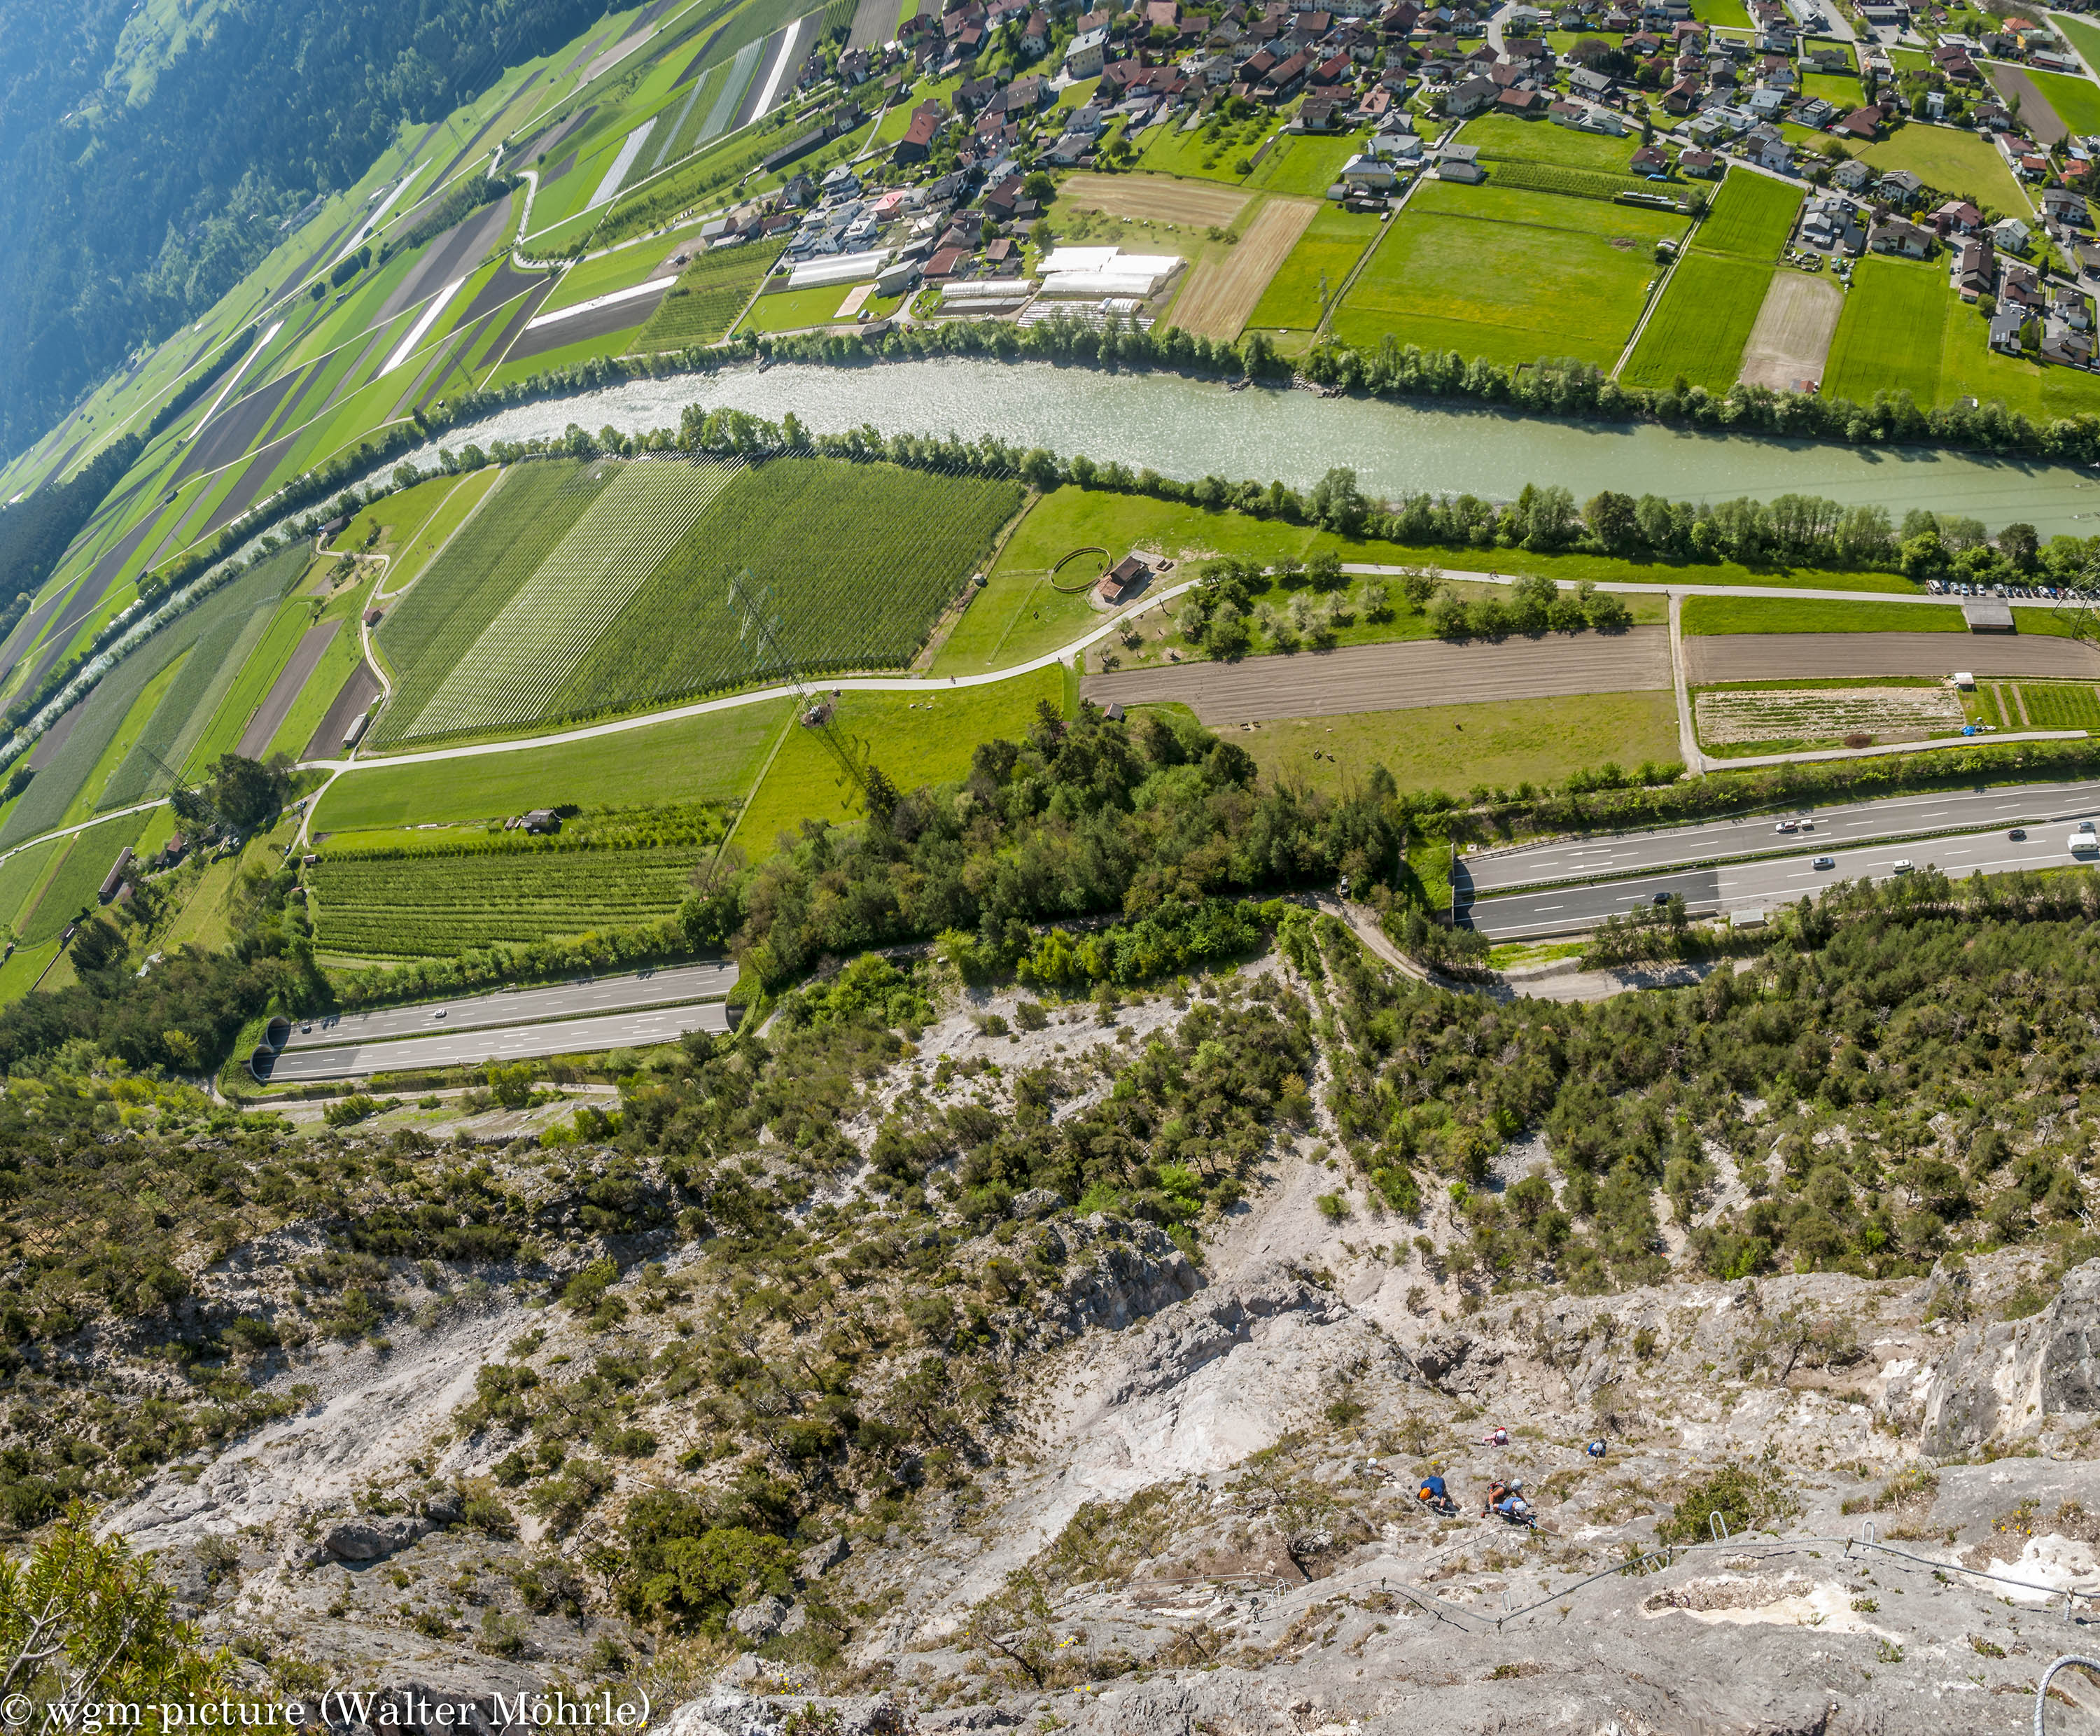 Klettersteig Geierwand : Geierwand klettersteig wgm picture